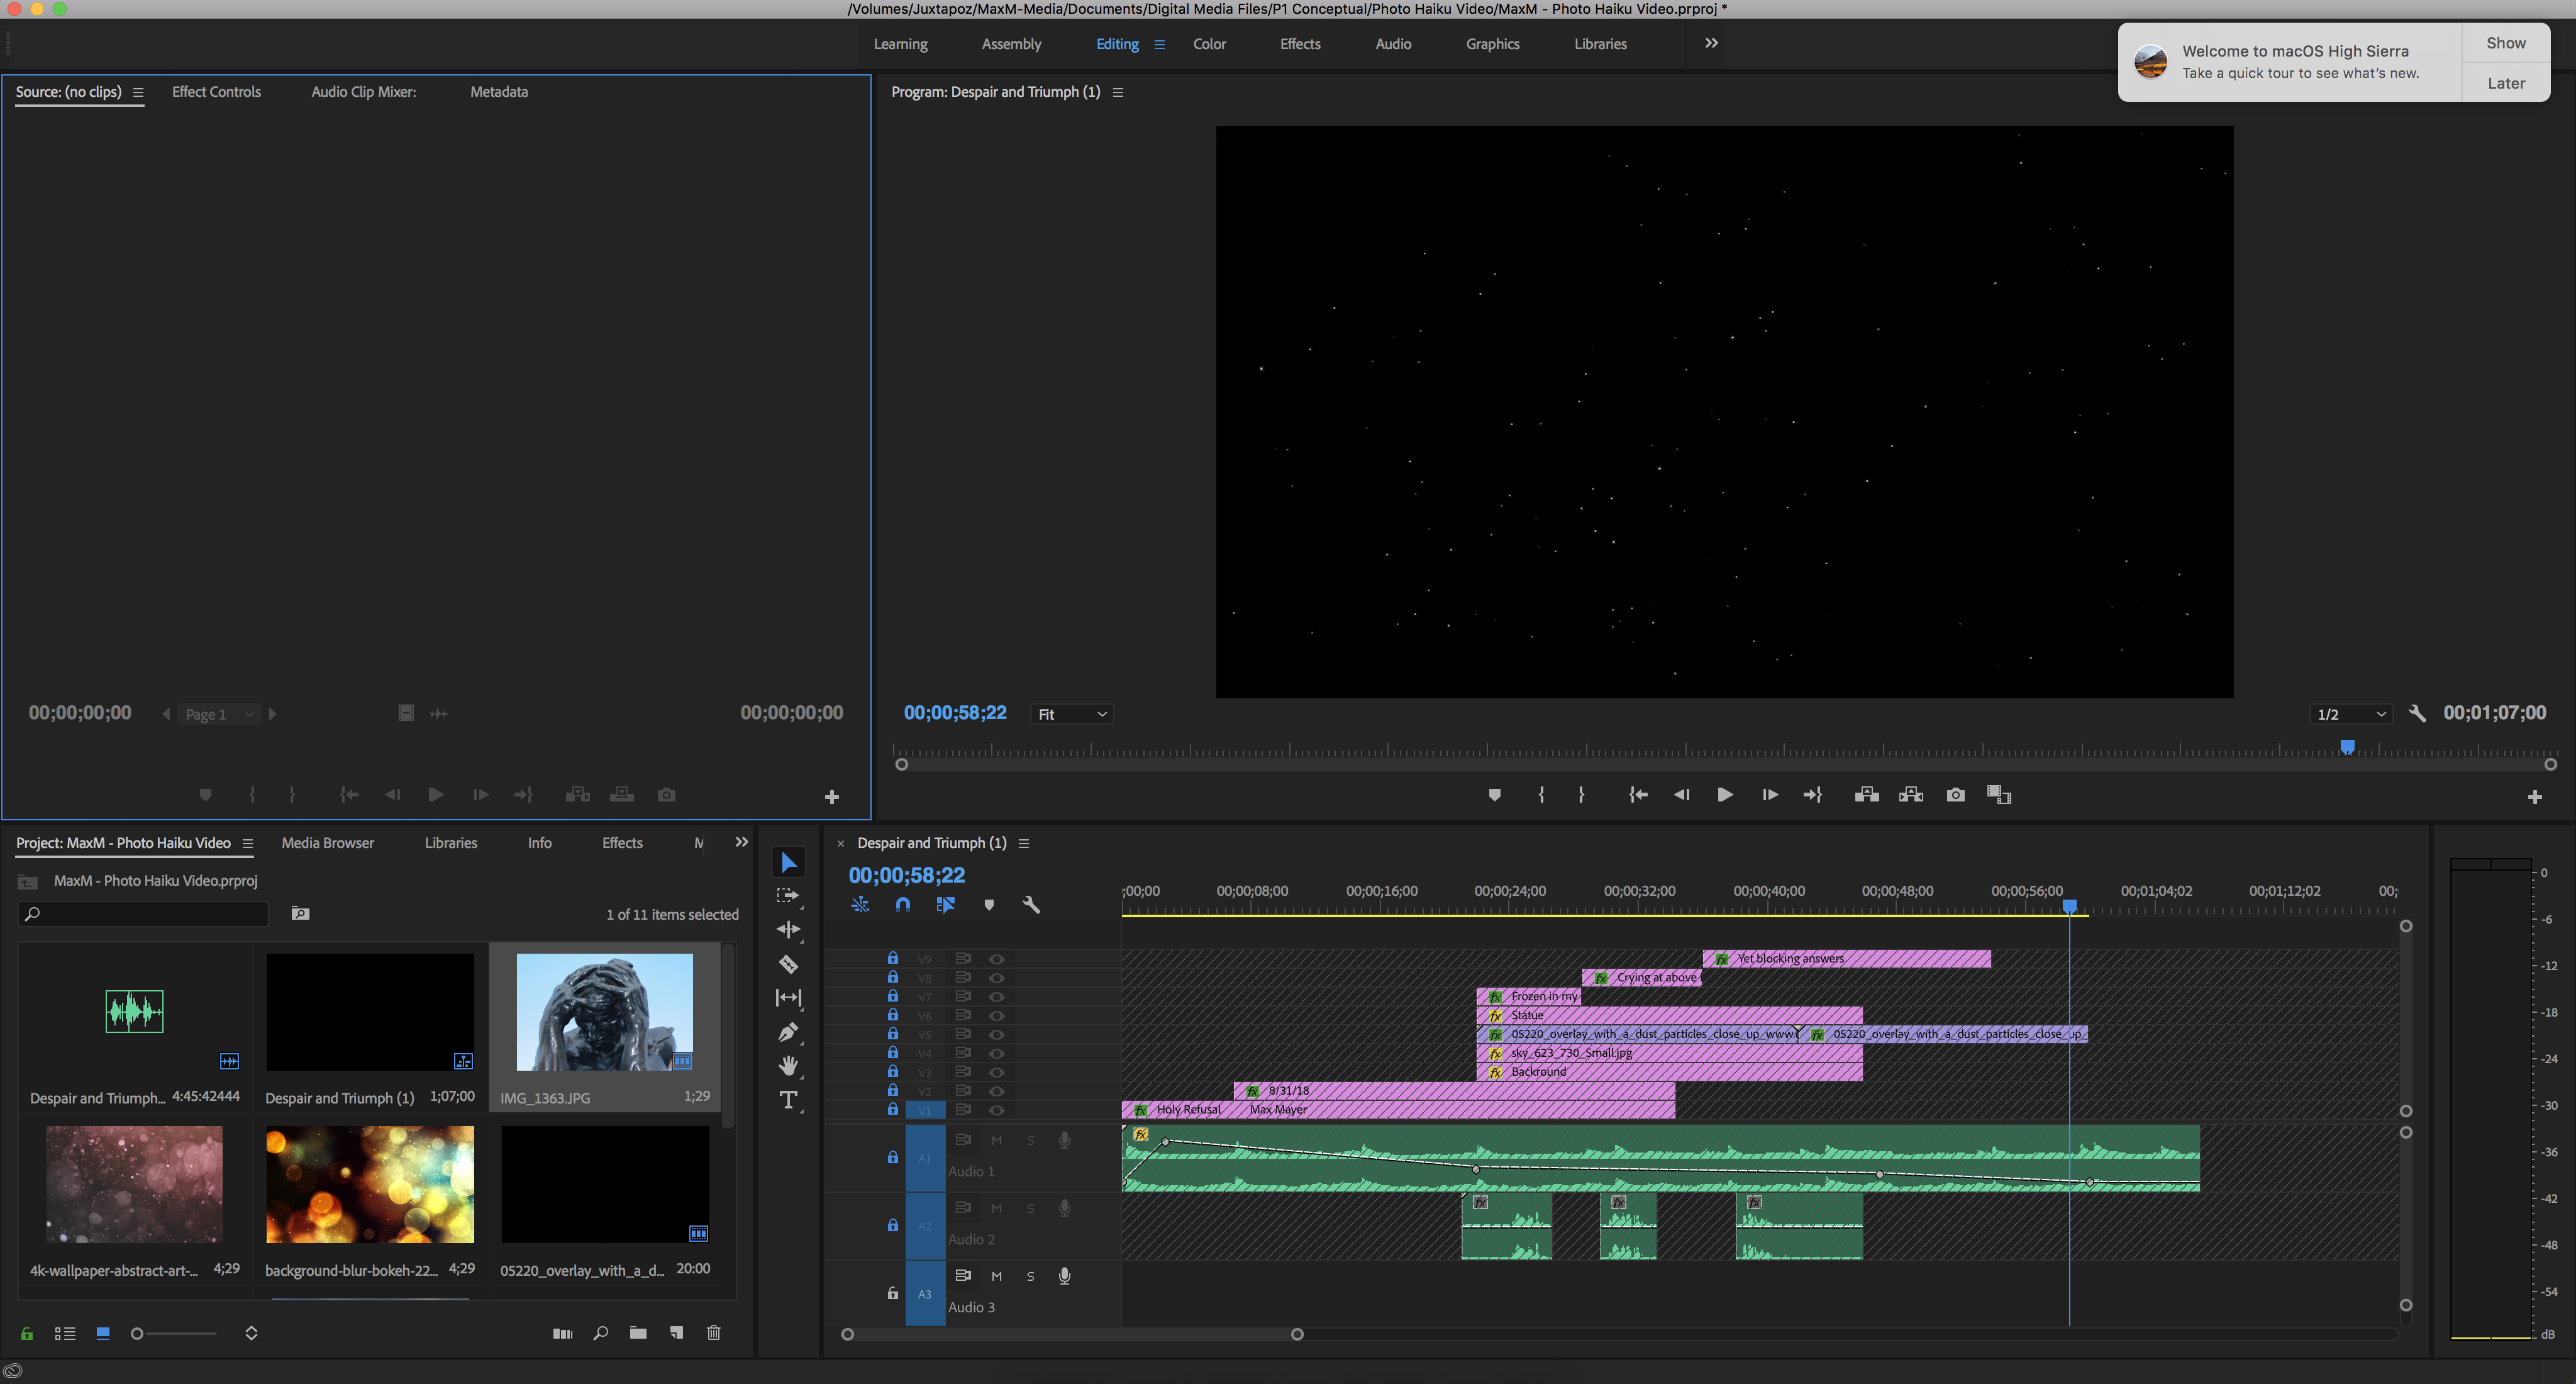 This is my Adobe Premier Pro Workspace. You can see how I edited my video together.